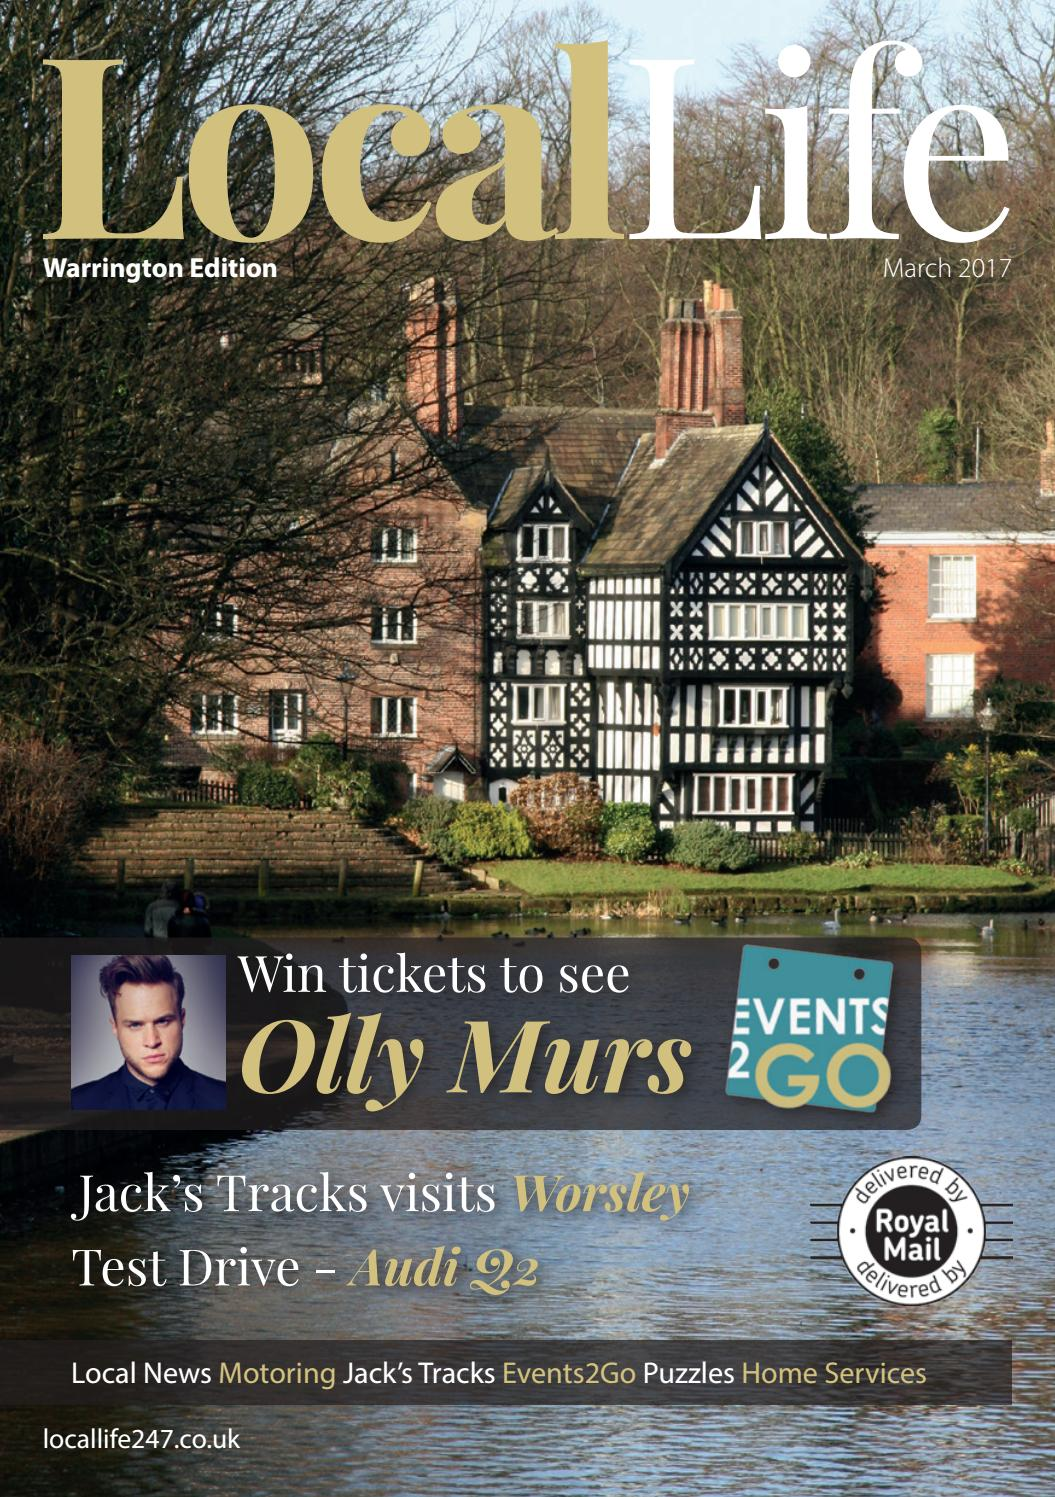 Local life warrington march 2017 by local life 247 ltd issuu aiddatafo Choice Image